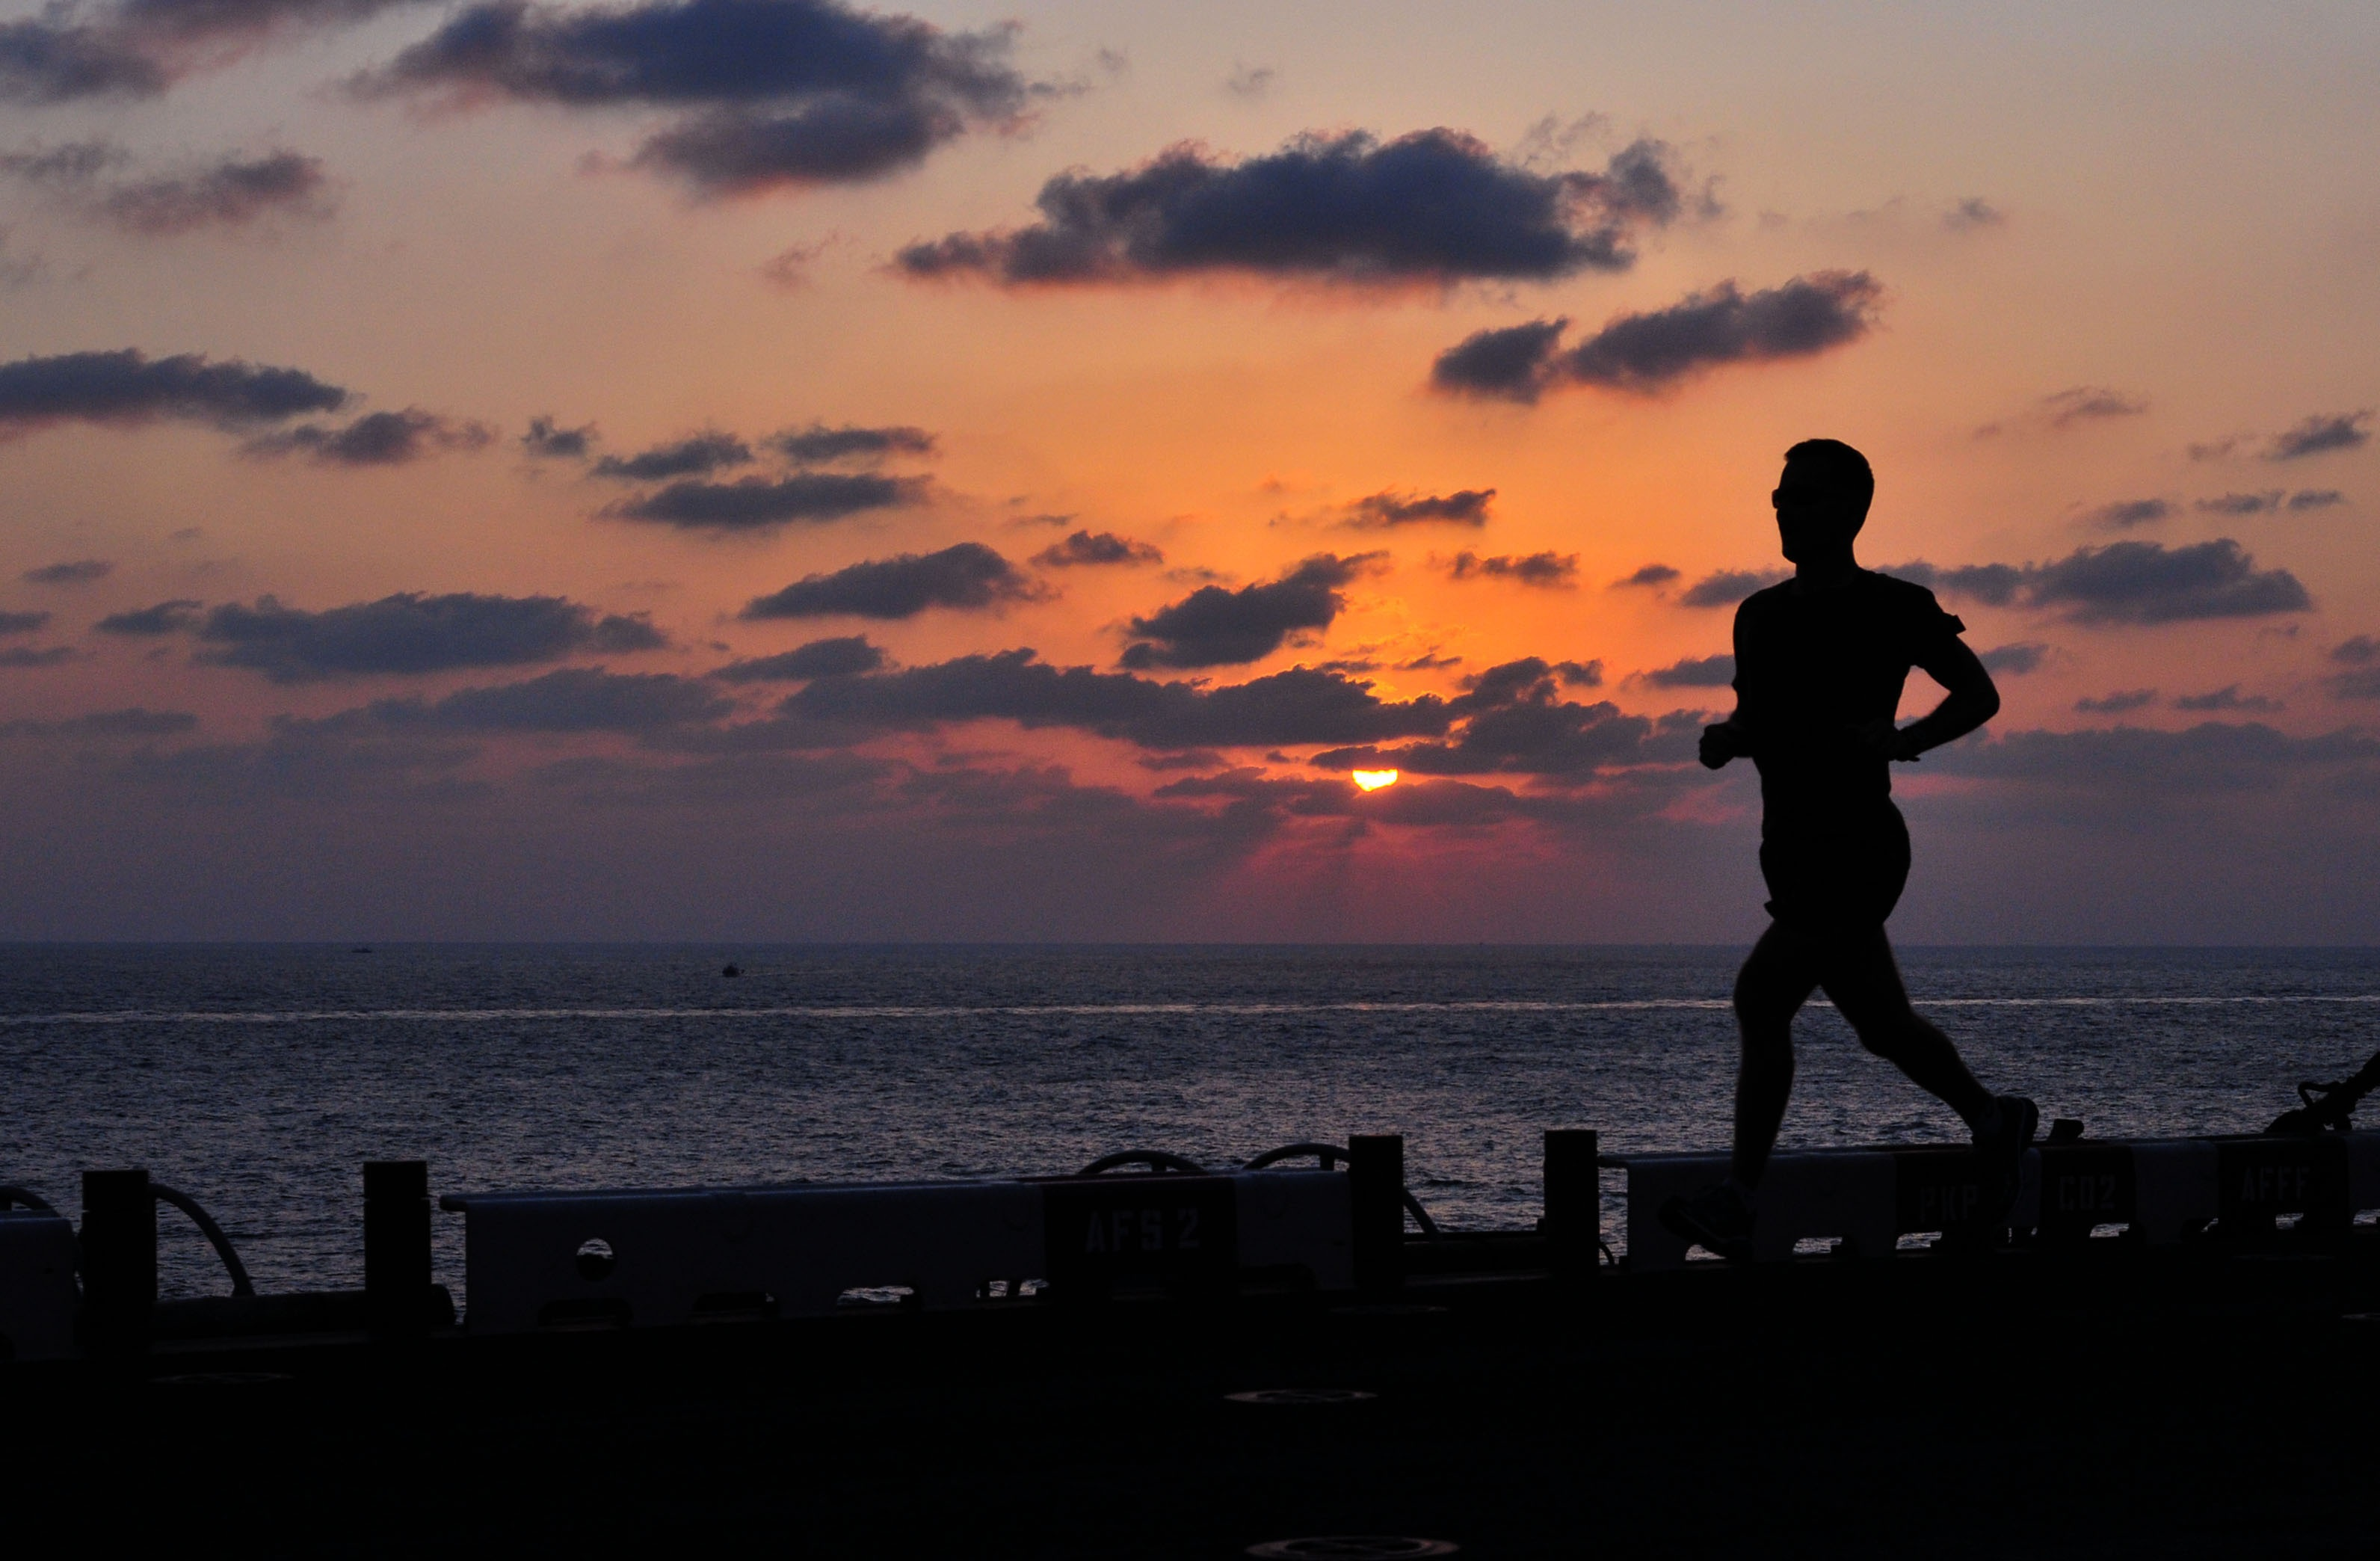 Runner on the Beach, Activity, Beach, Fit, Fitness, HQ Photo